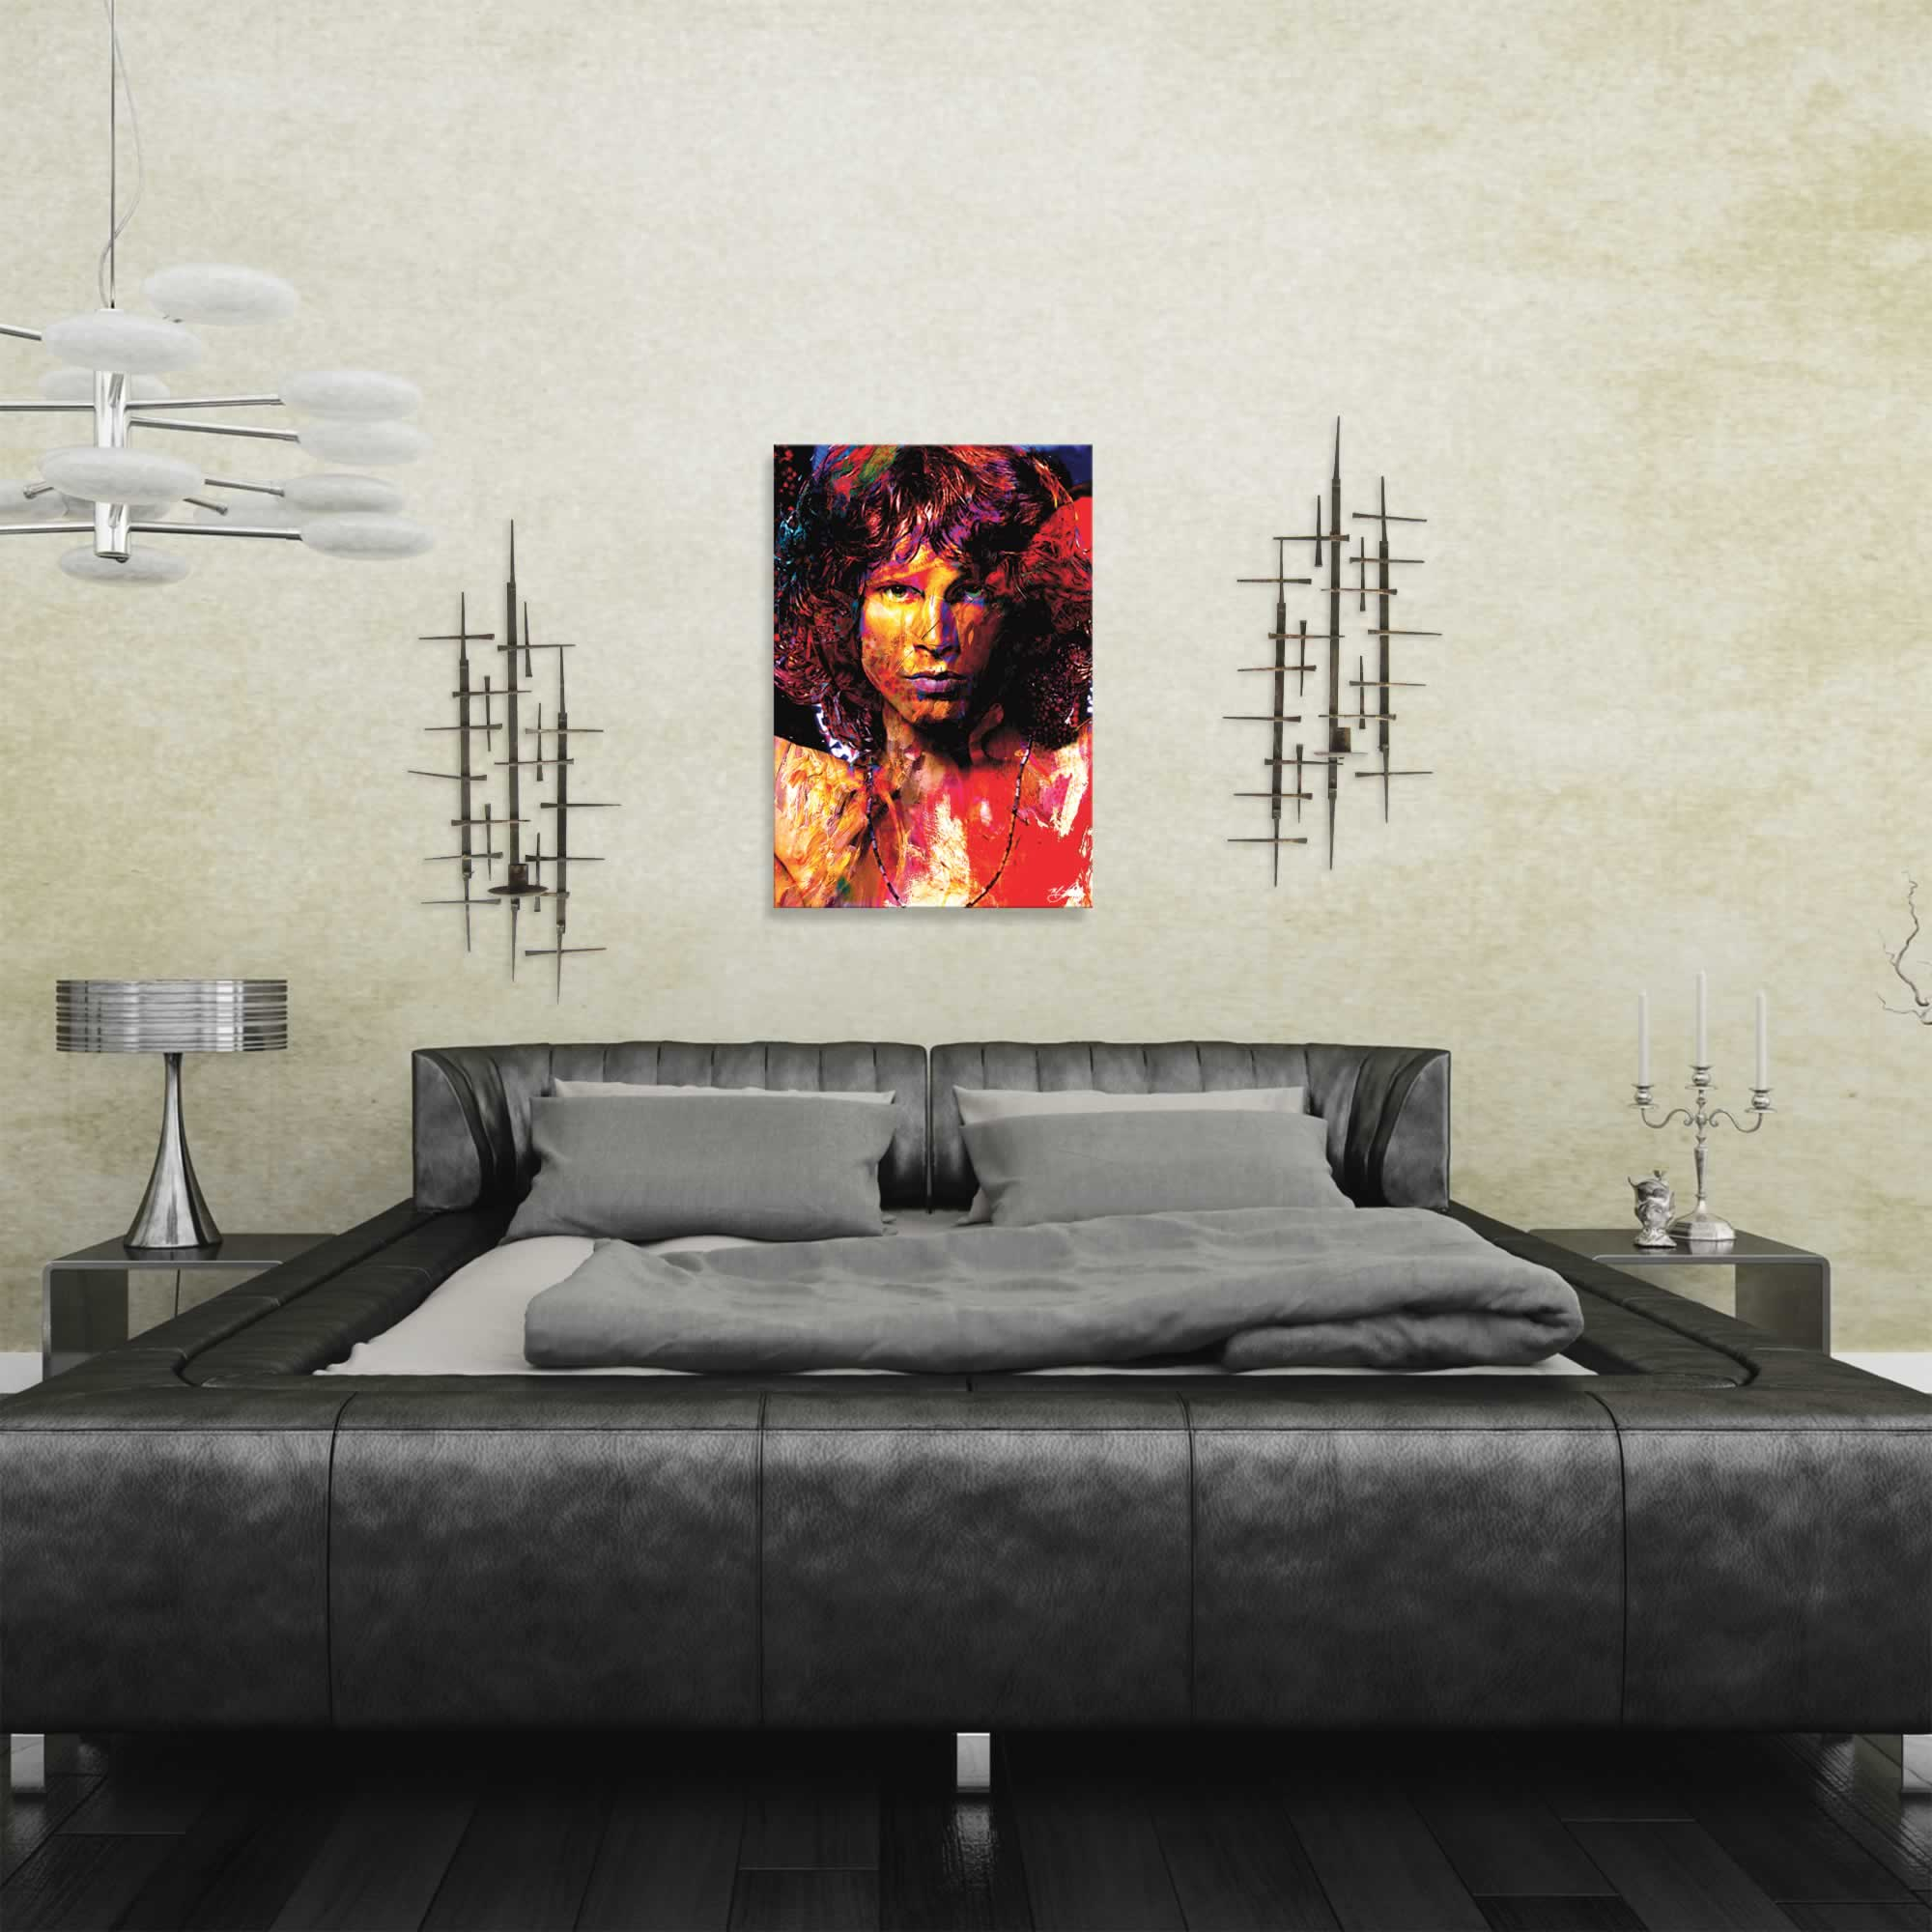 Jim Morrison Window of My Soul | Pop Art Painting by Mark Lewis, Signed & Numbered Limited Edition - ML0016